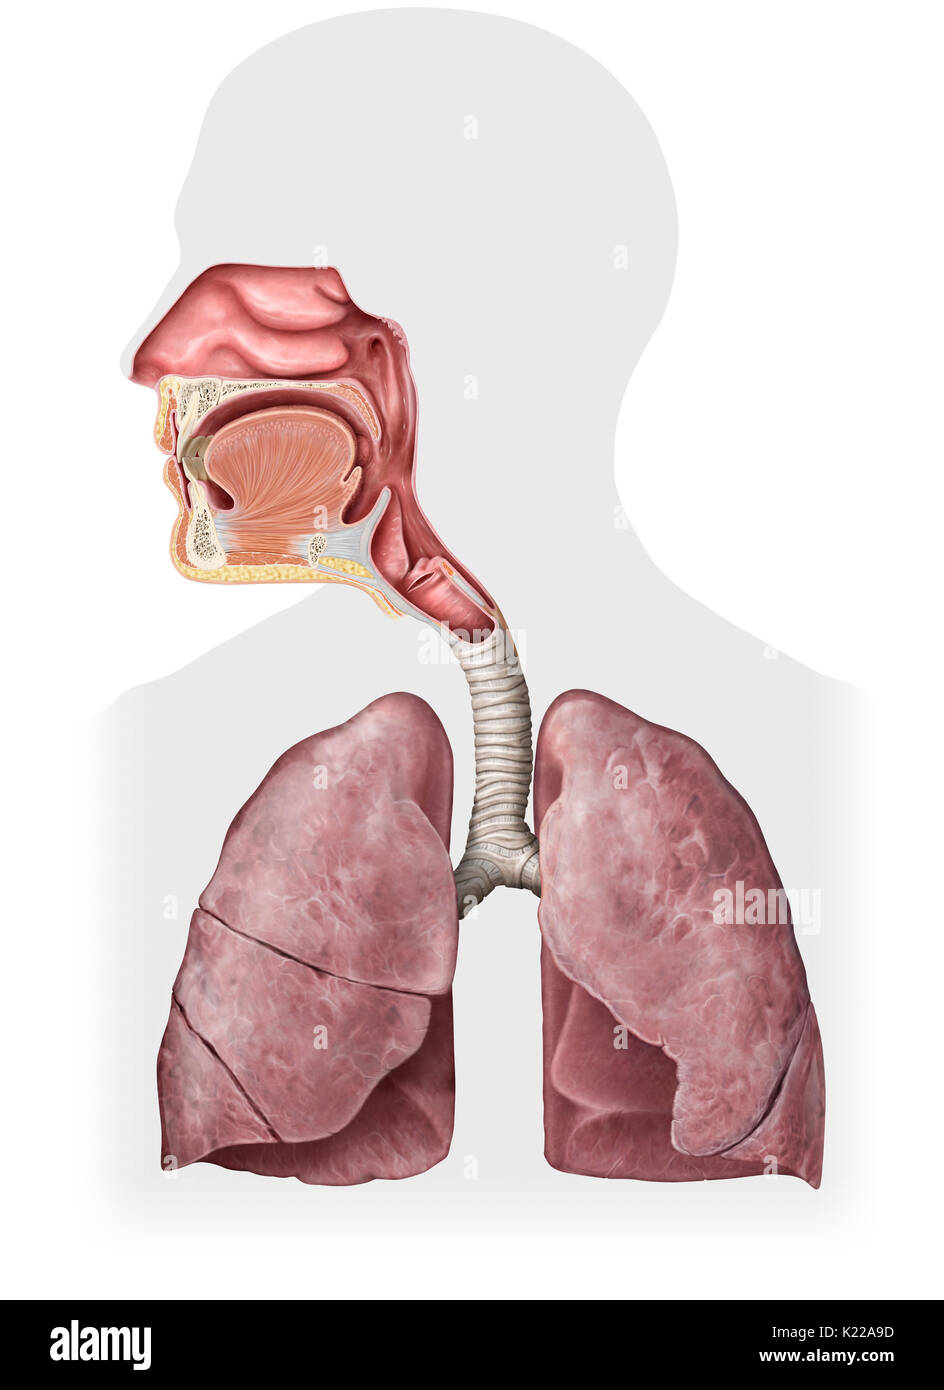 This image shows the organs of the respiratory system, which